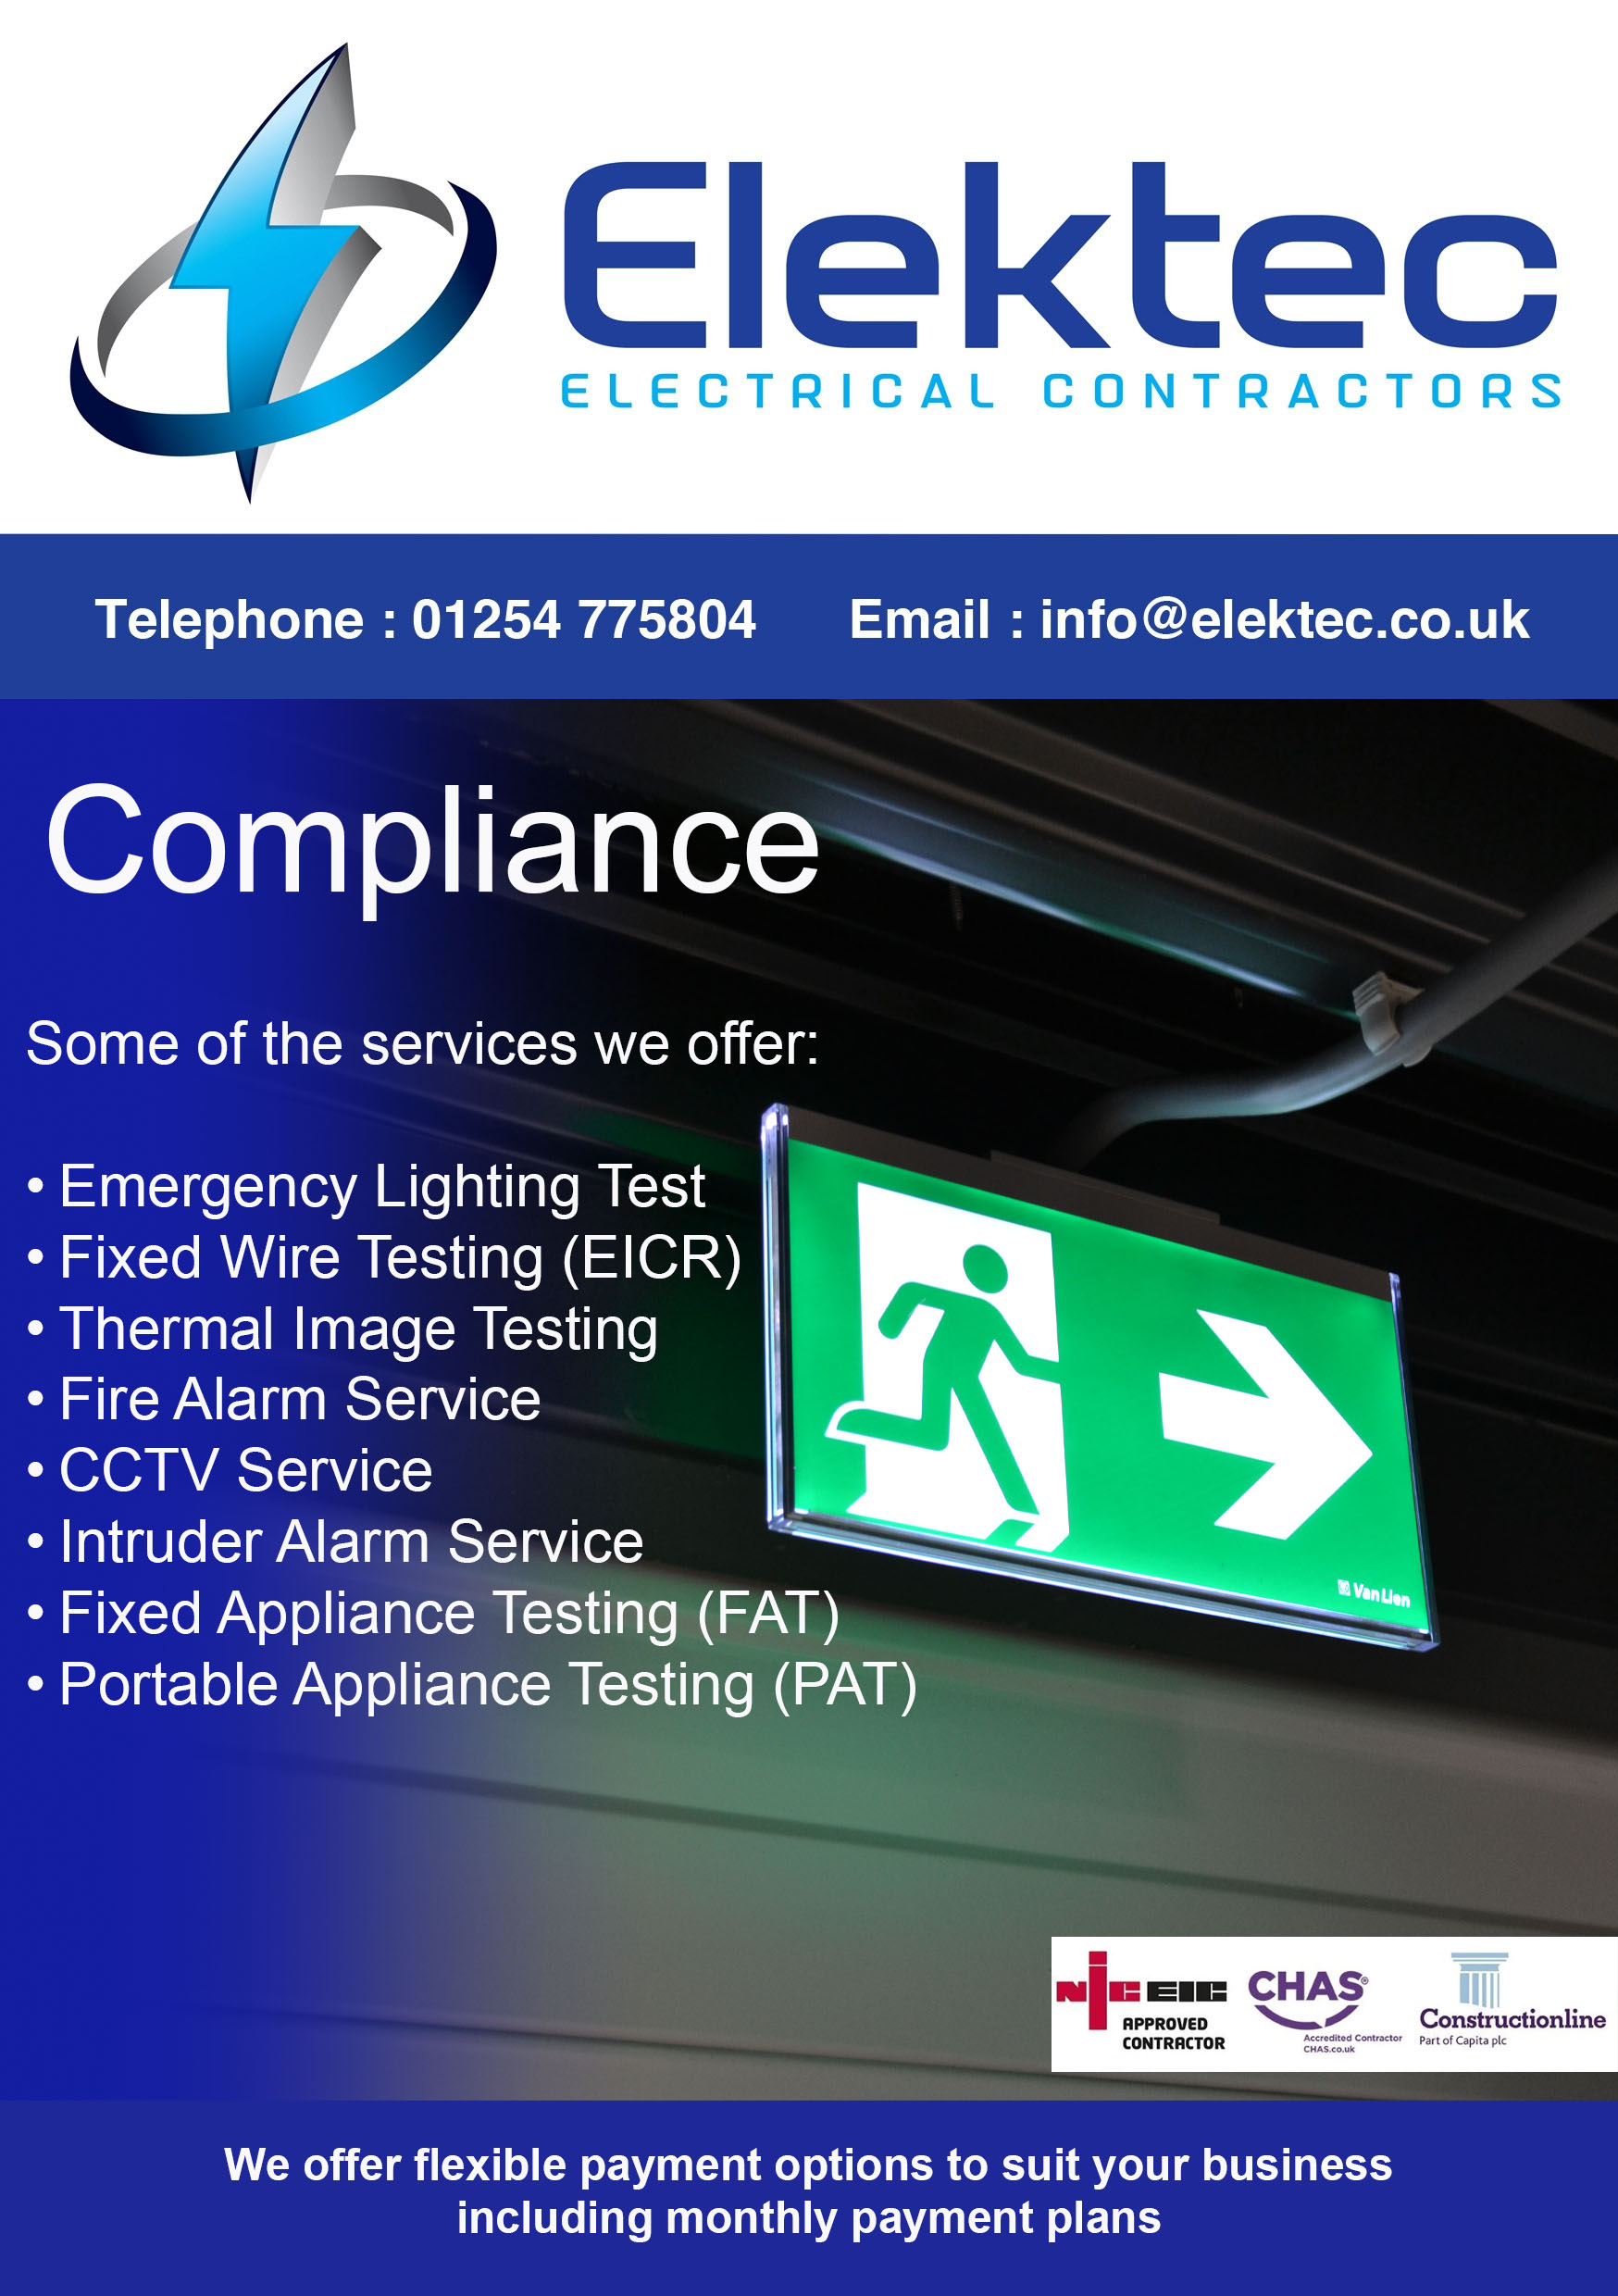 Electrical compliance - Elektec introduce monthly payment plans!